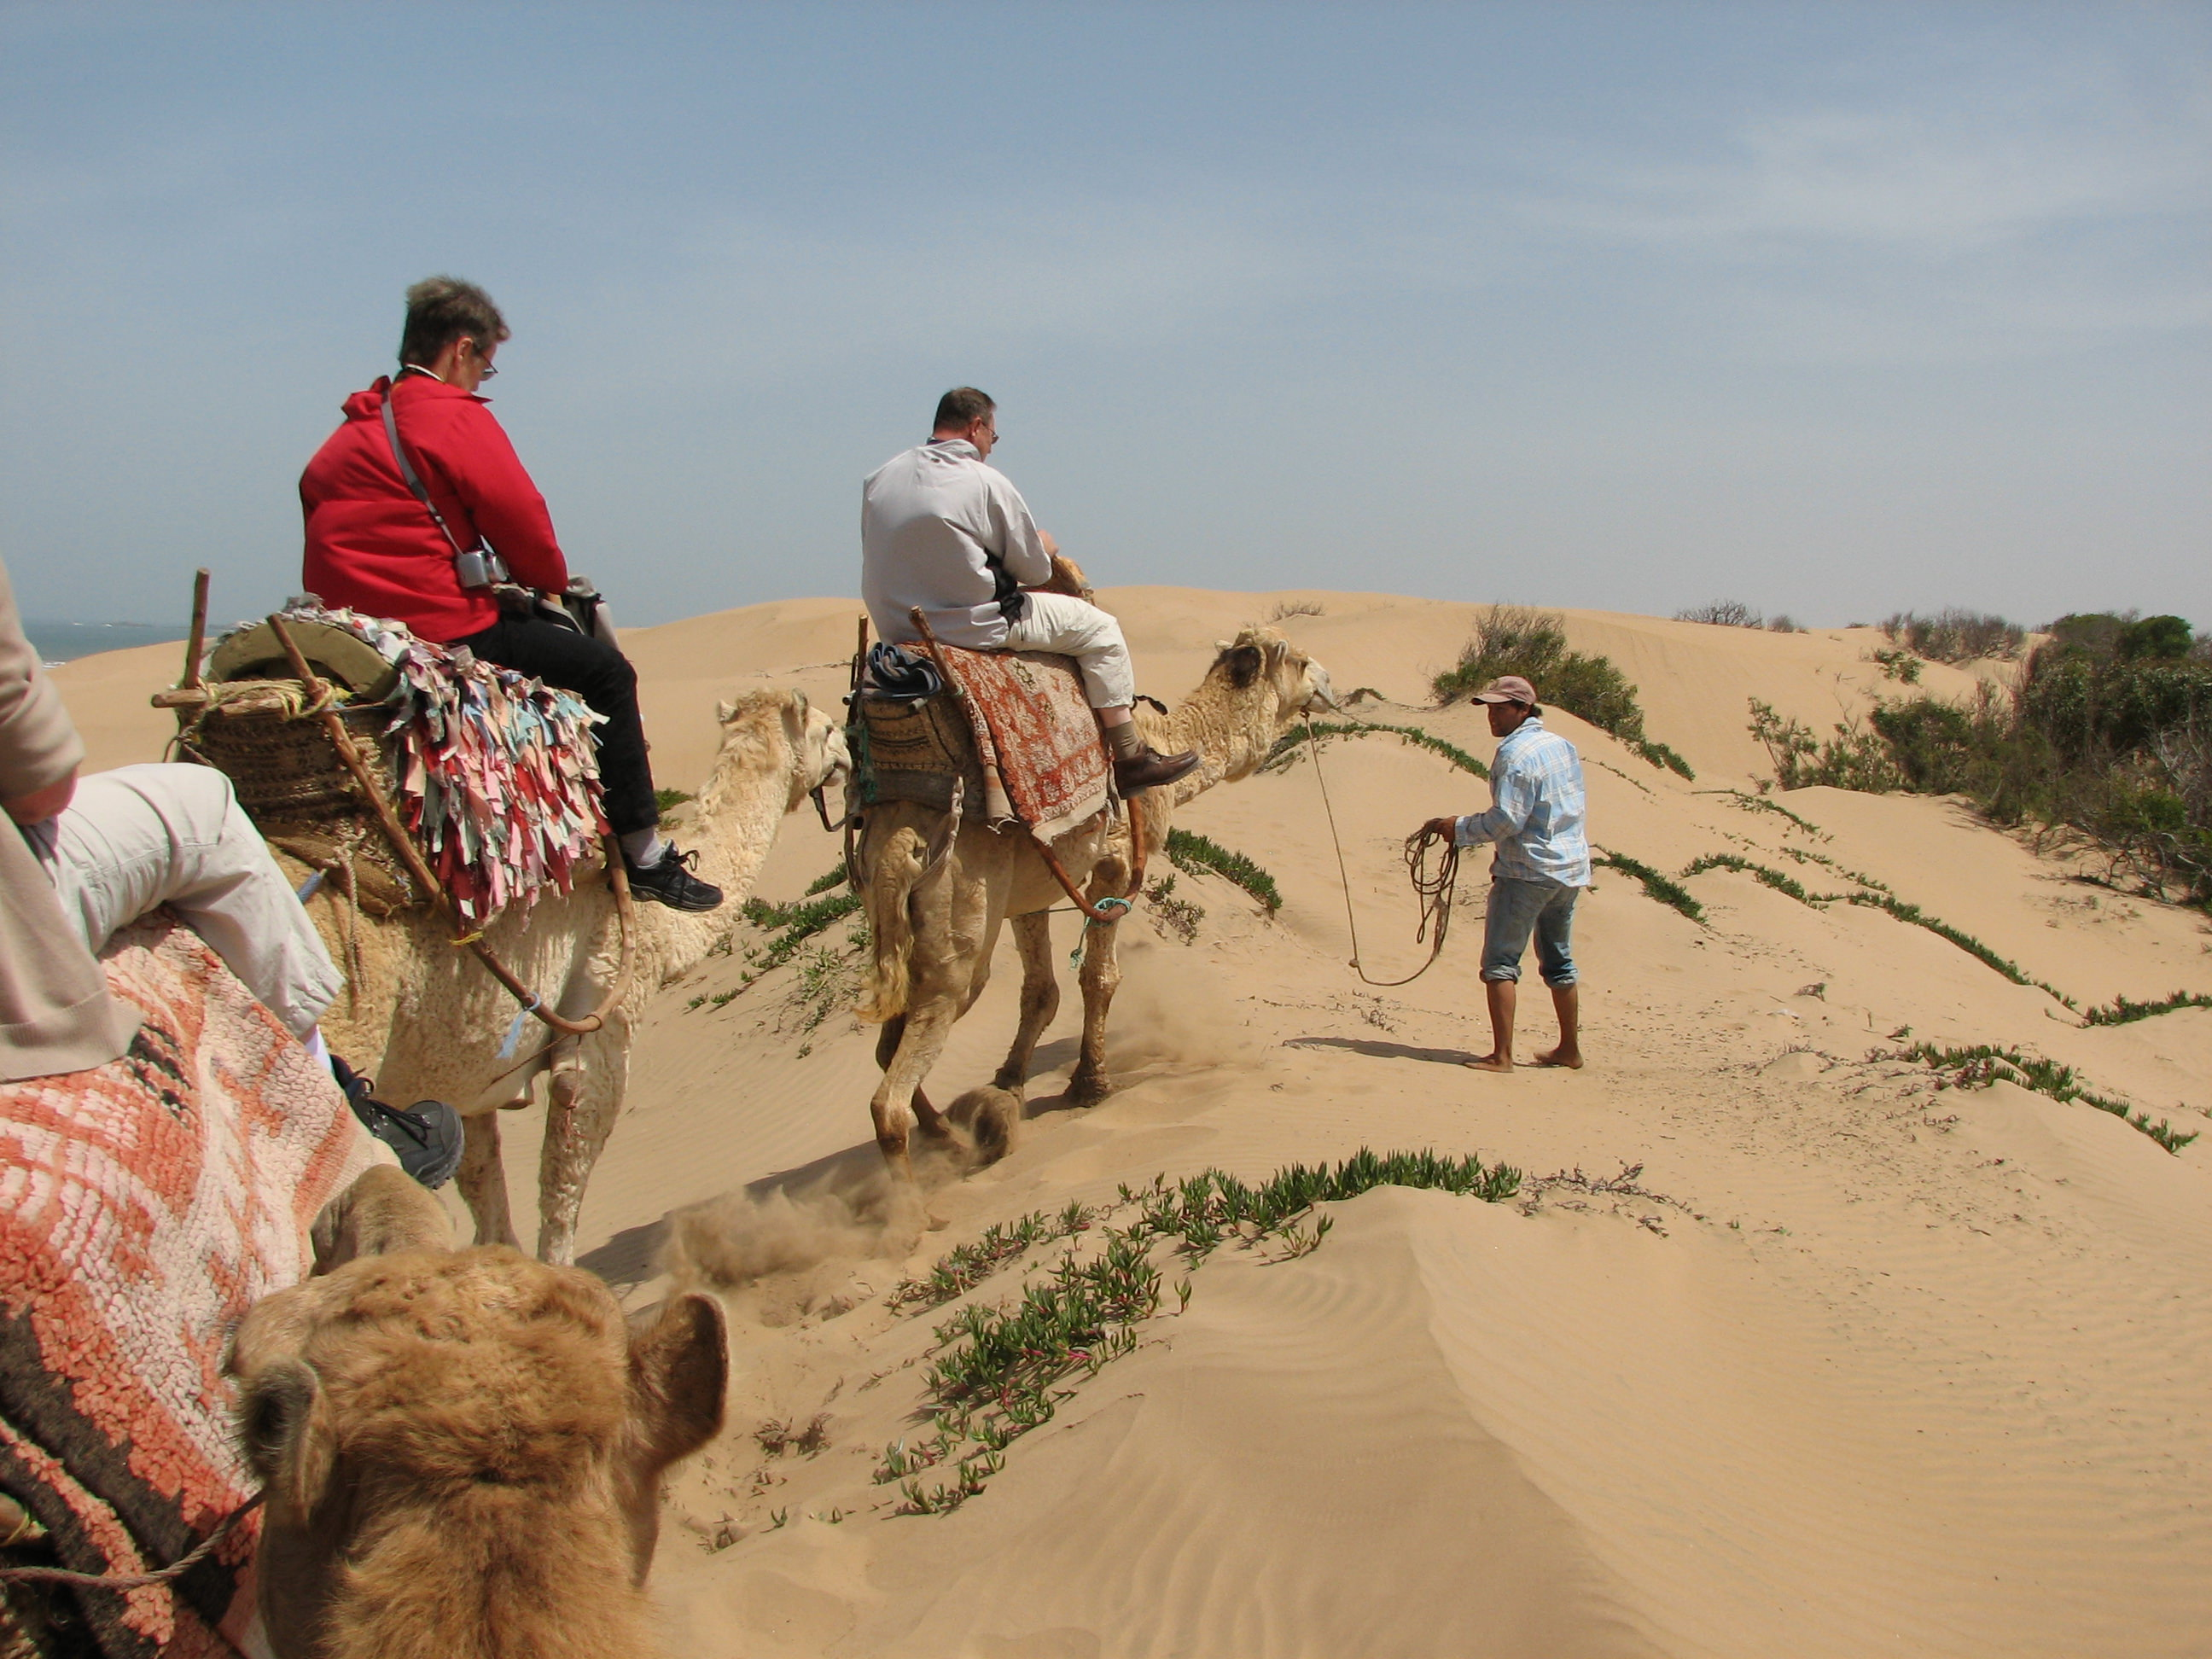 One-day camel ride with lunch